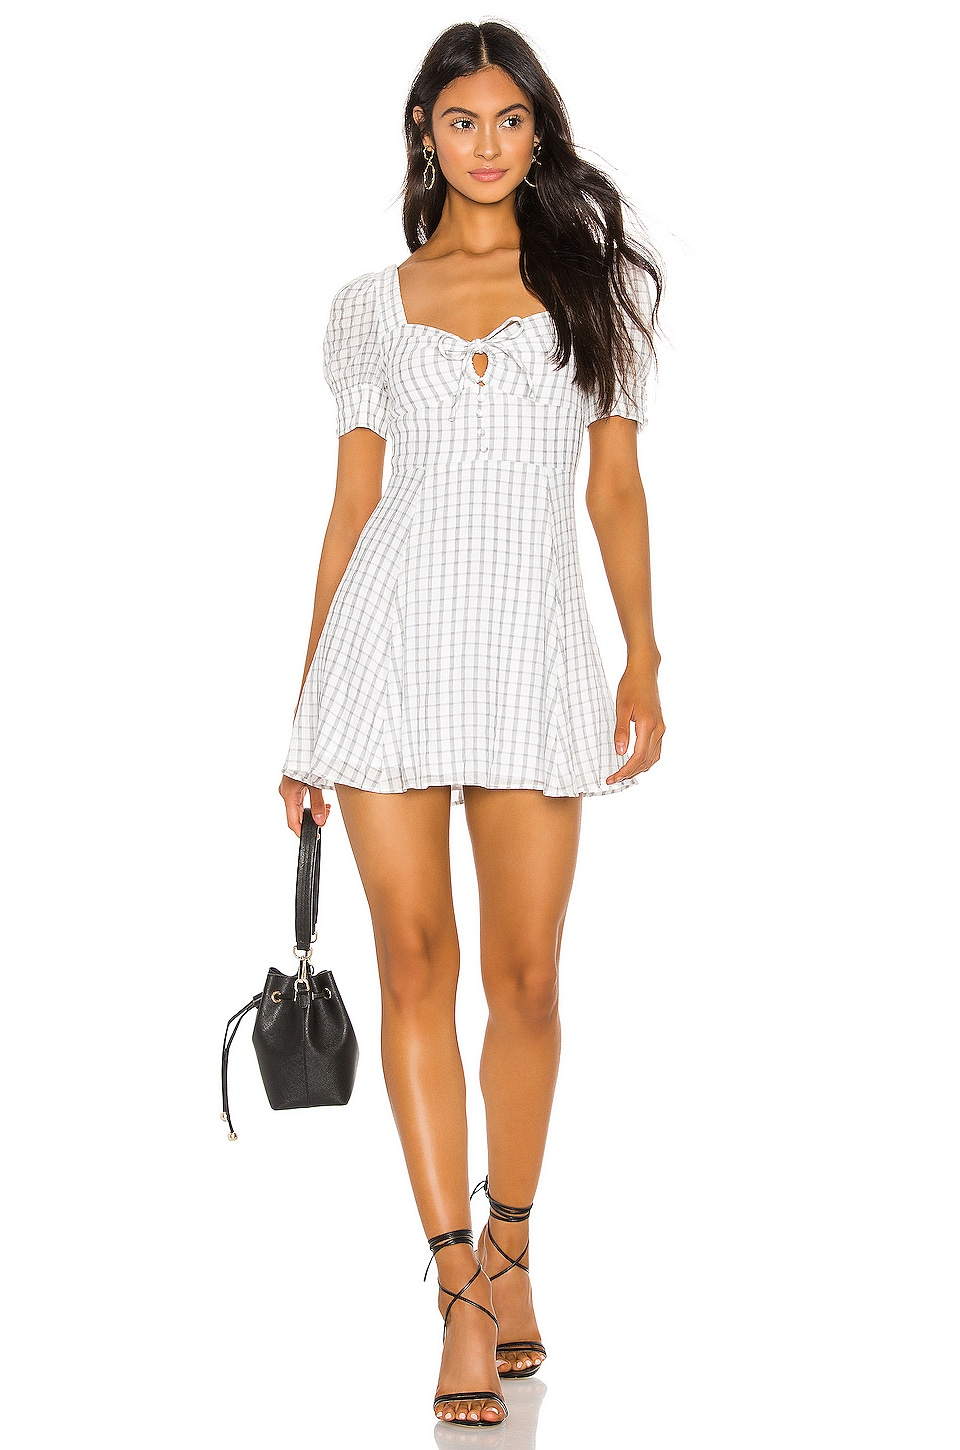 Privacy Please Darla Mini Dress in Black & White